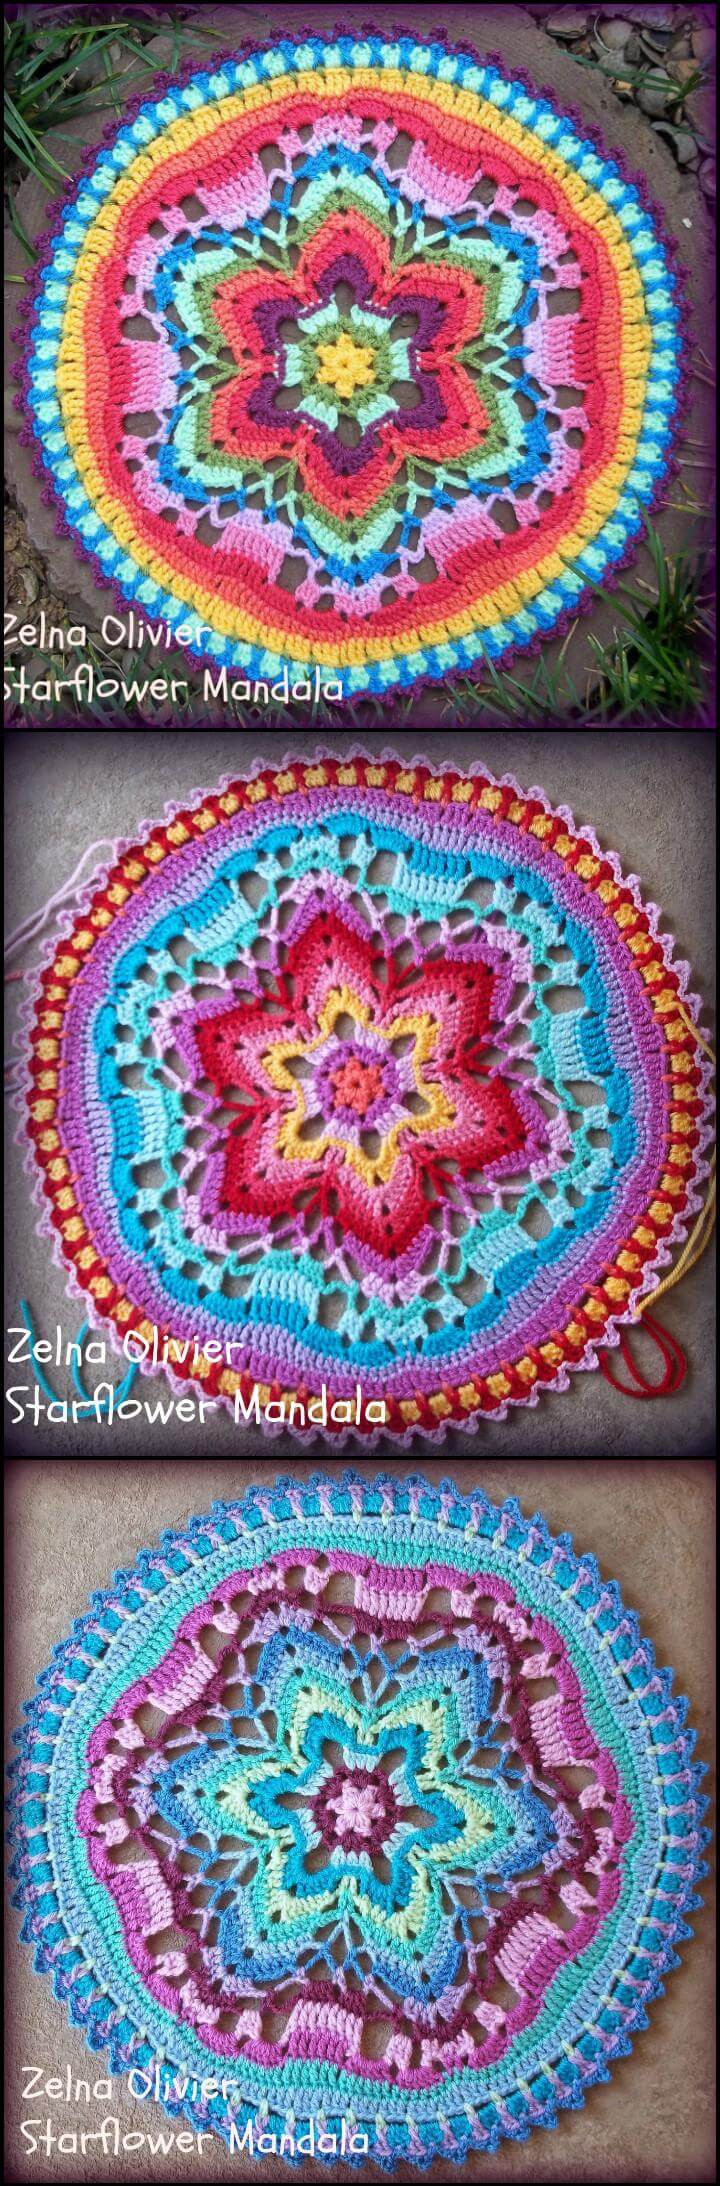 Crochet Mandalas Awesome 60 Free Crochet Mandala Patterns Diy & Crafts Of Incredible 41 Pics Crochet Mandalas